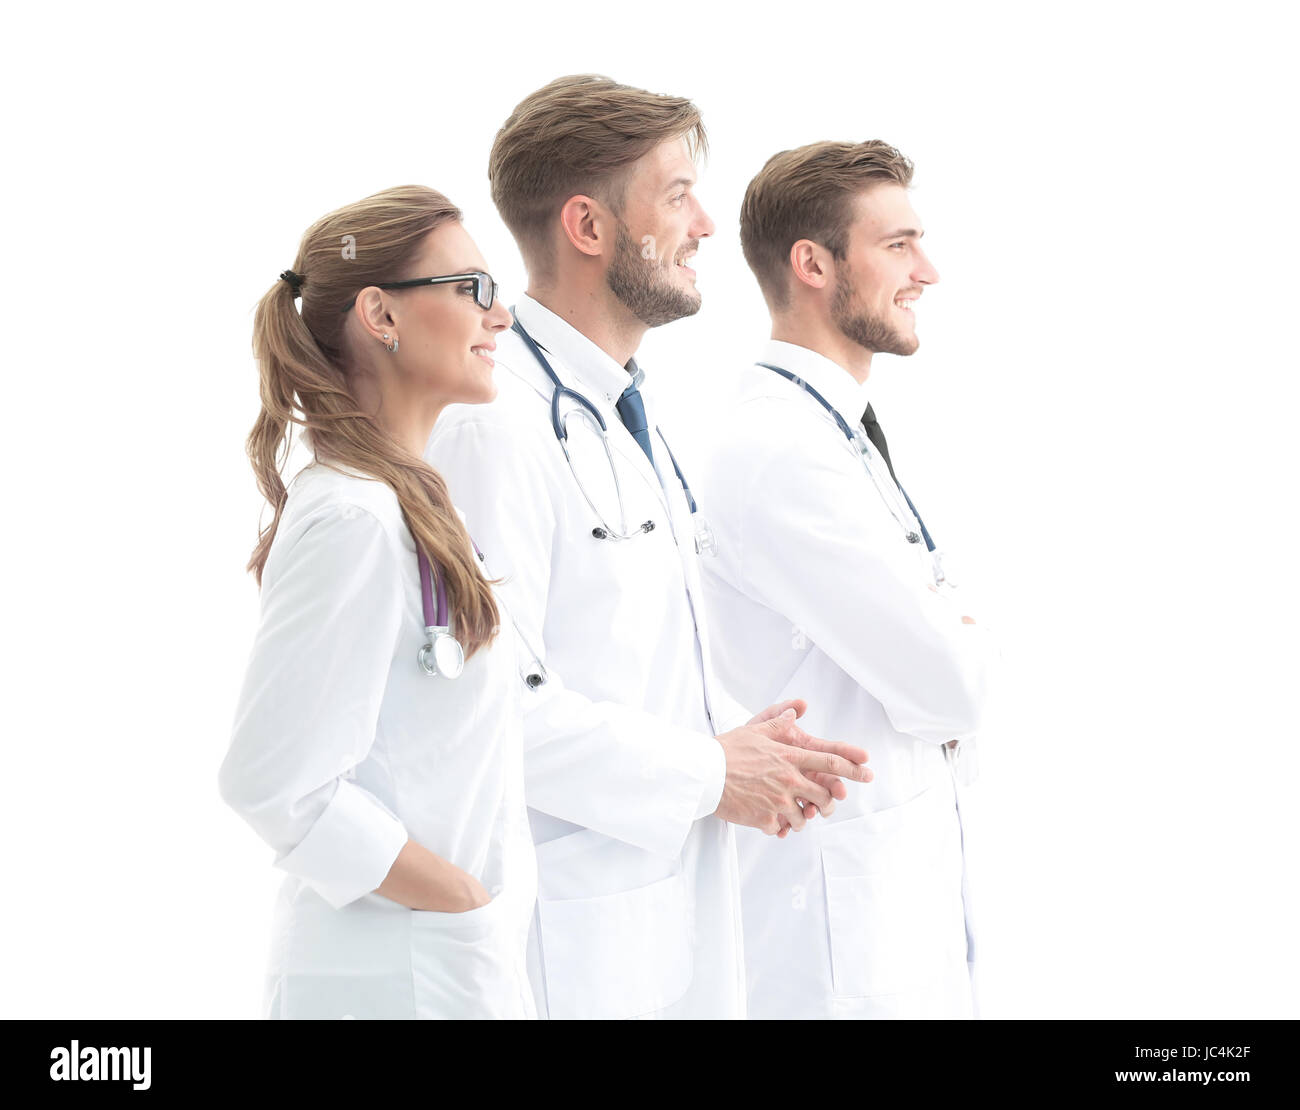 Happy doctors in formalwear looking to the side. - Stock Image